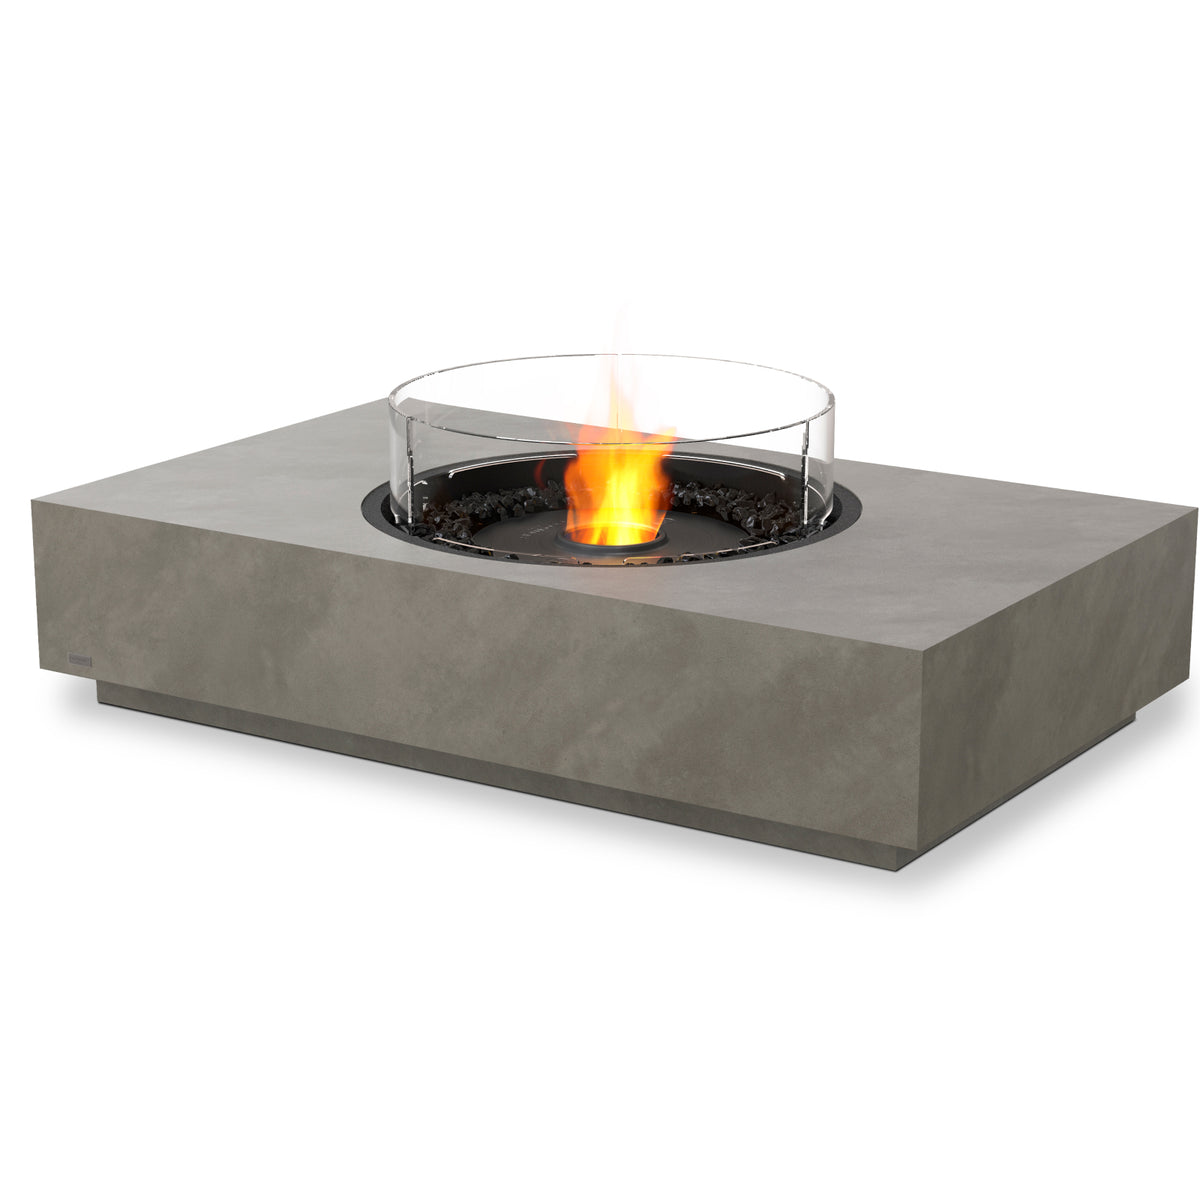 martini 50 ethanol fire pit table natural black